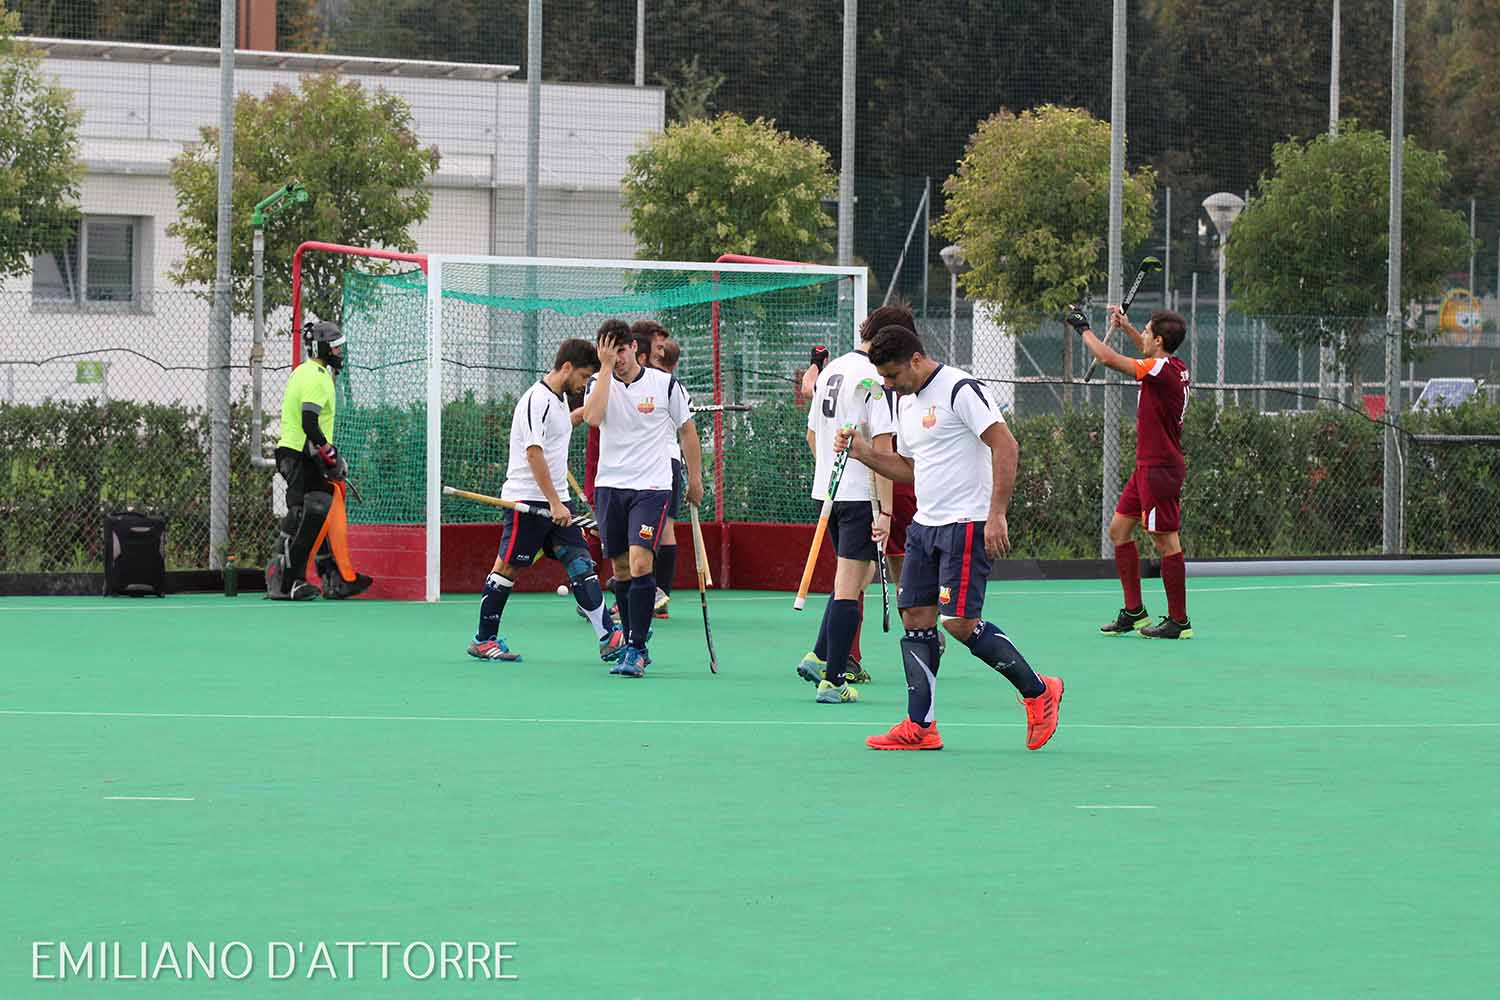 Low-Hockey Club Roma Vs Hockey Team Bologna 6-1(1zd) (Serie A1) 3.11.2019